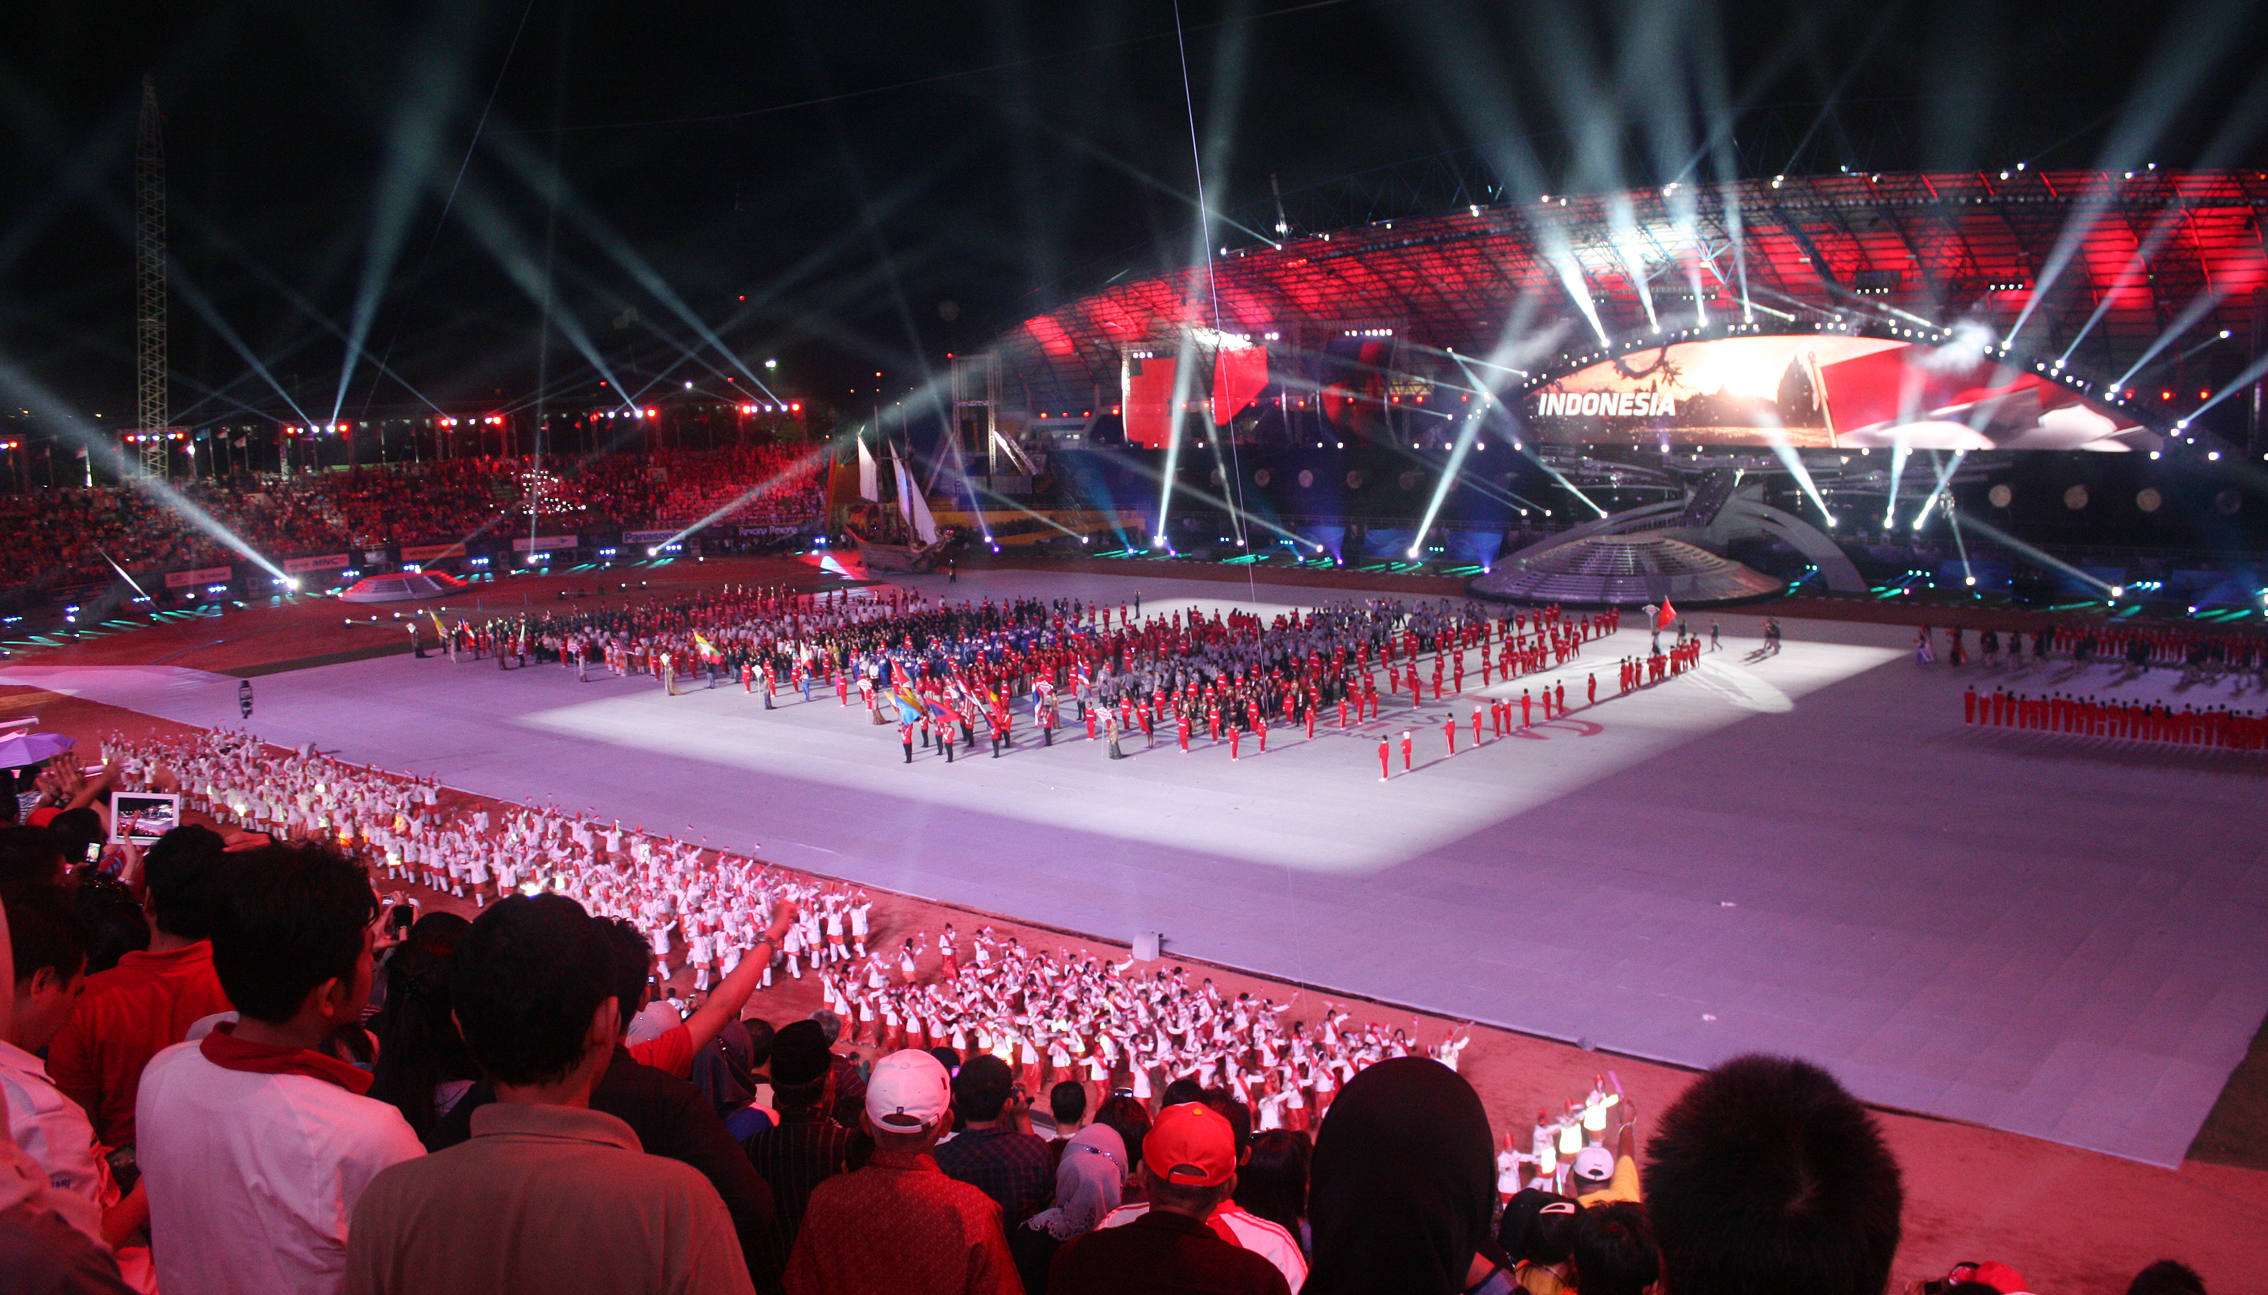 2011 Southeast Asian Games - Wikipedia, the free encyclopedia